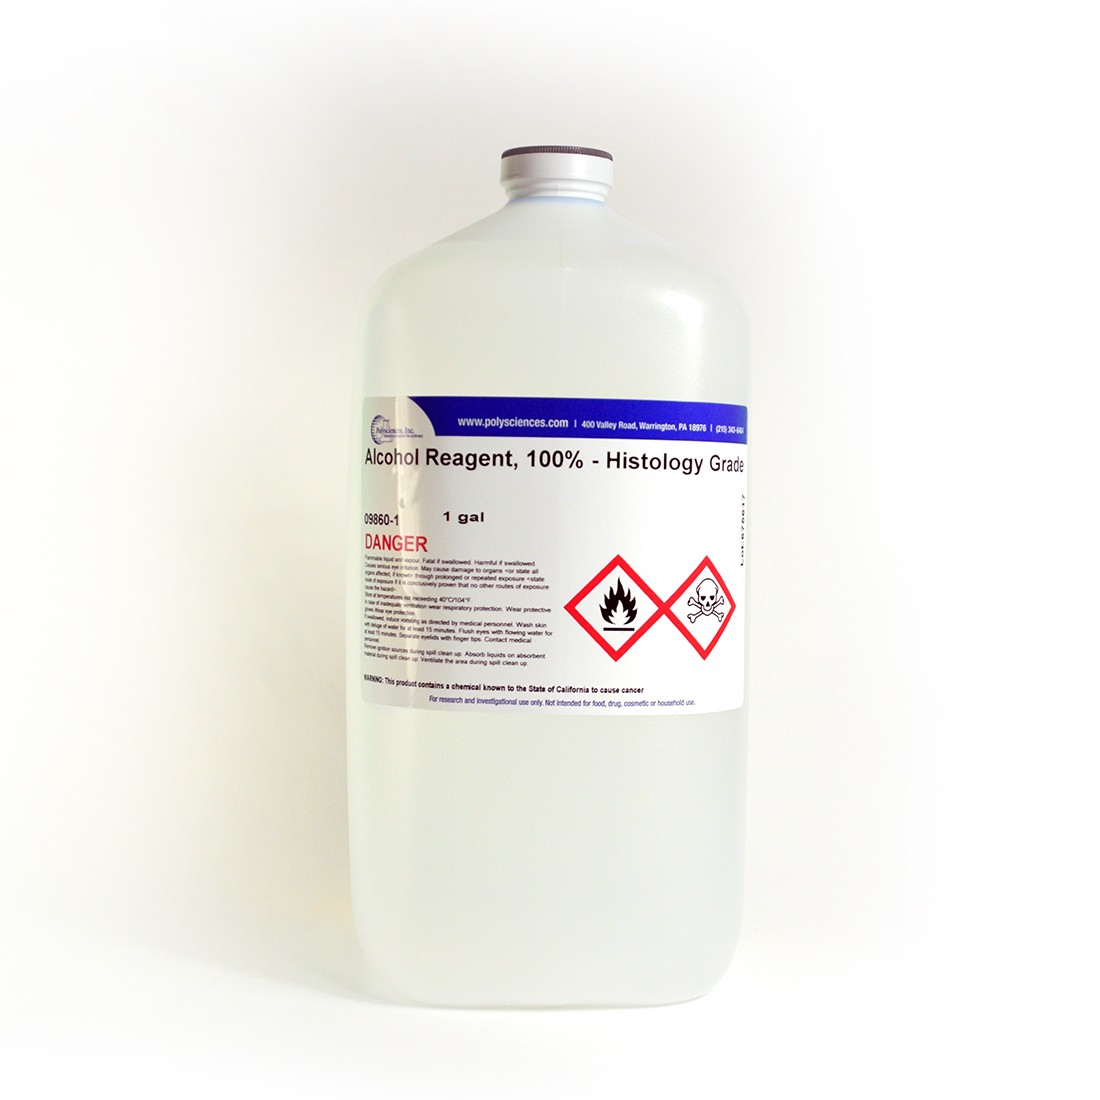 Alcohol Reagent, 100% - Histology Grade